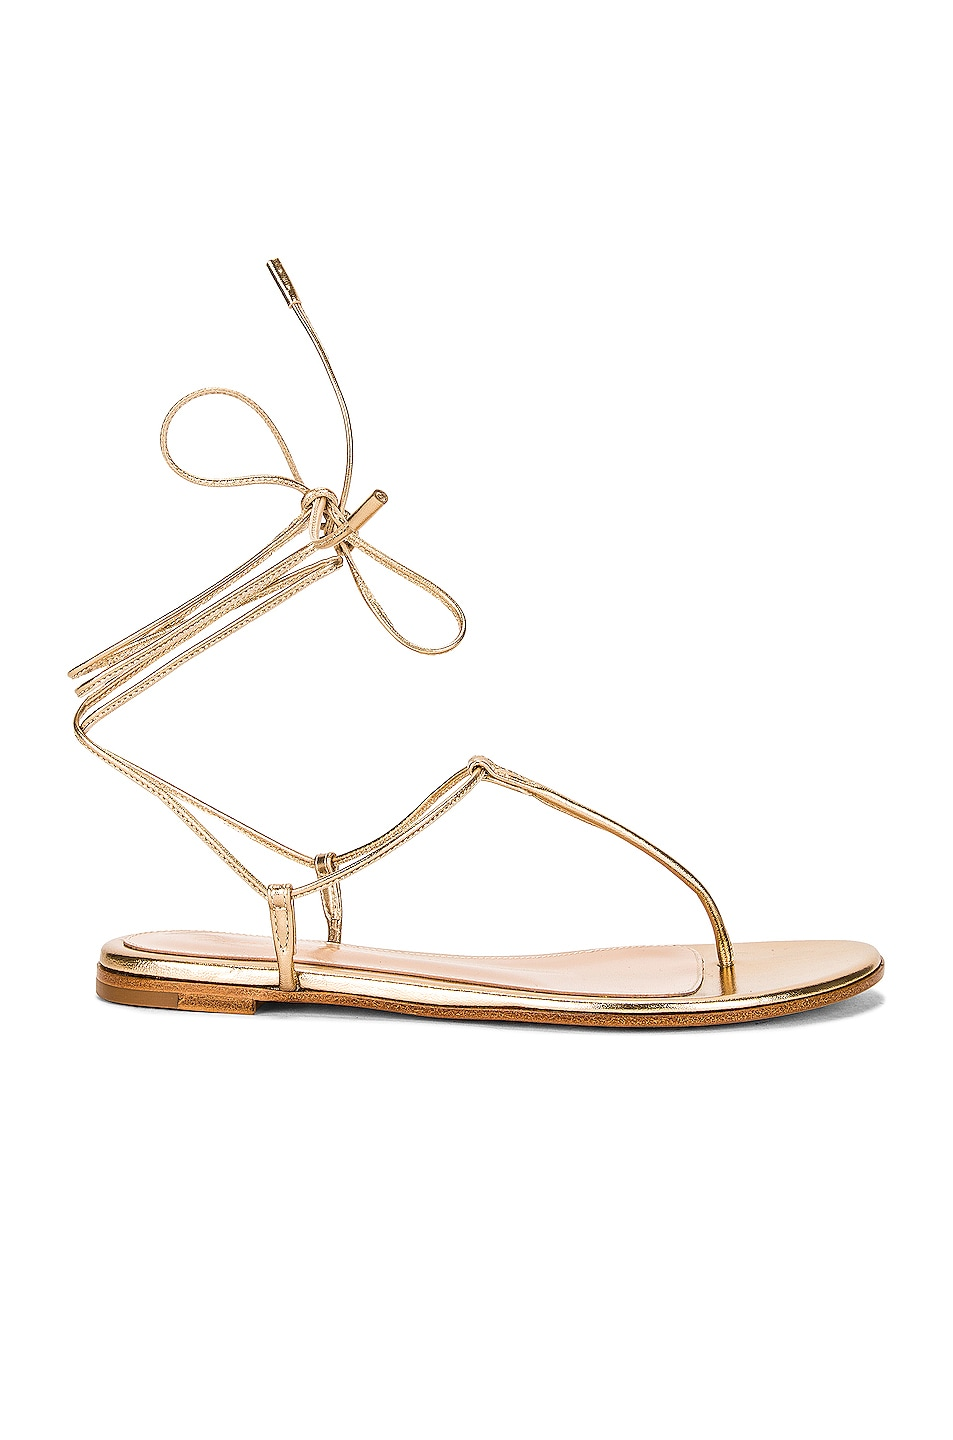 Image 1 of Gianvito Rossi Gwyneth Flat Sandals in Mekong